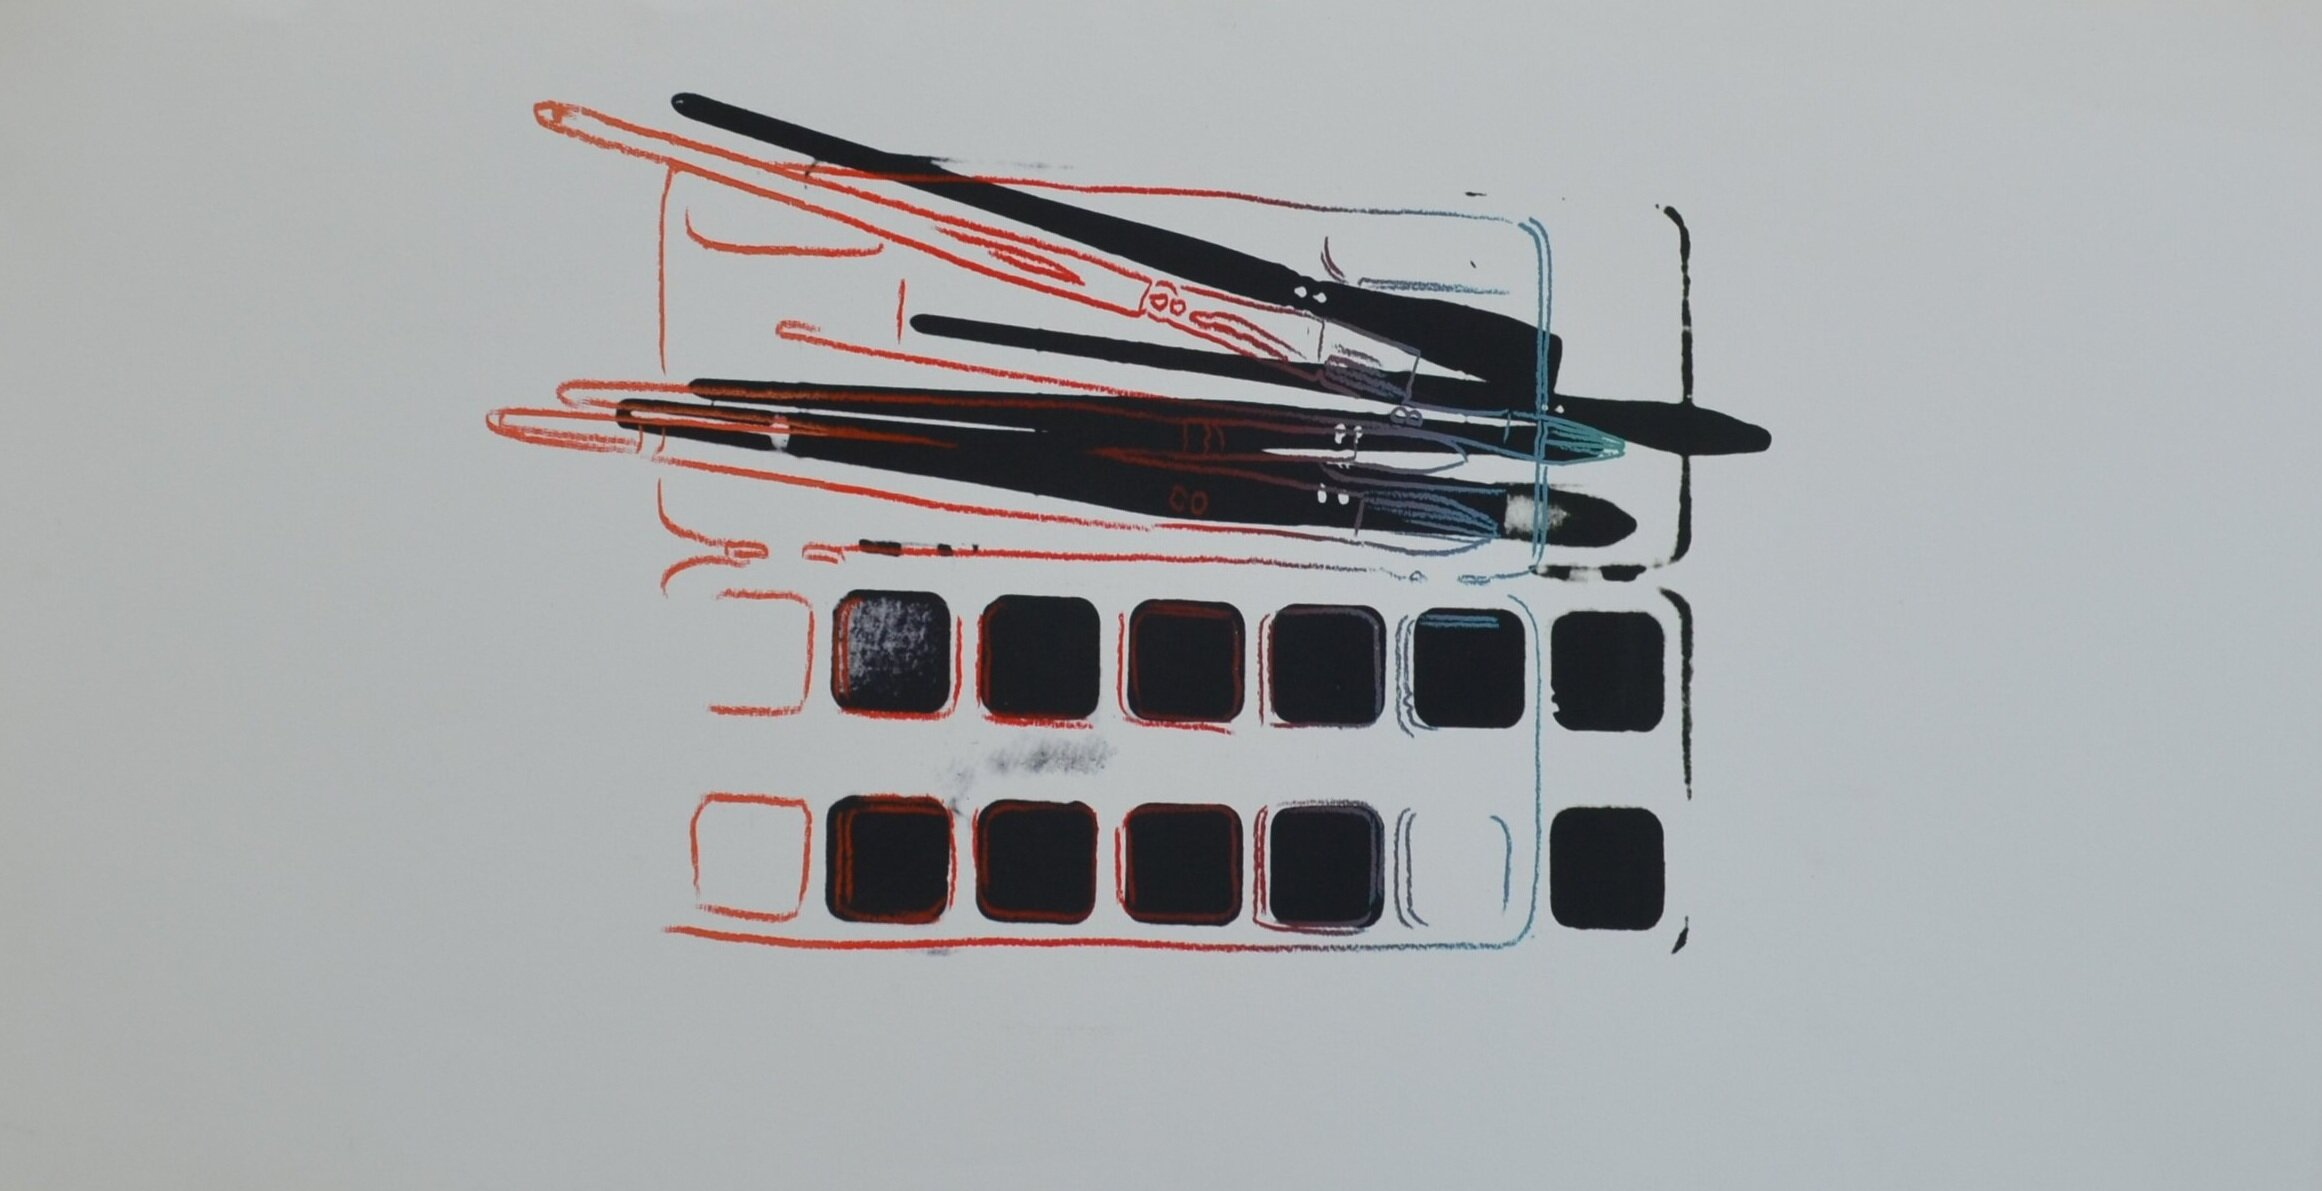 screenprint of a Watercolor Paint kit with Brushes by Andy Warhol